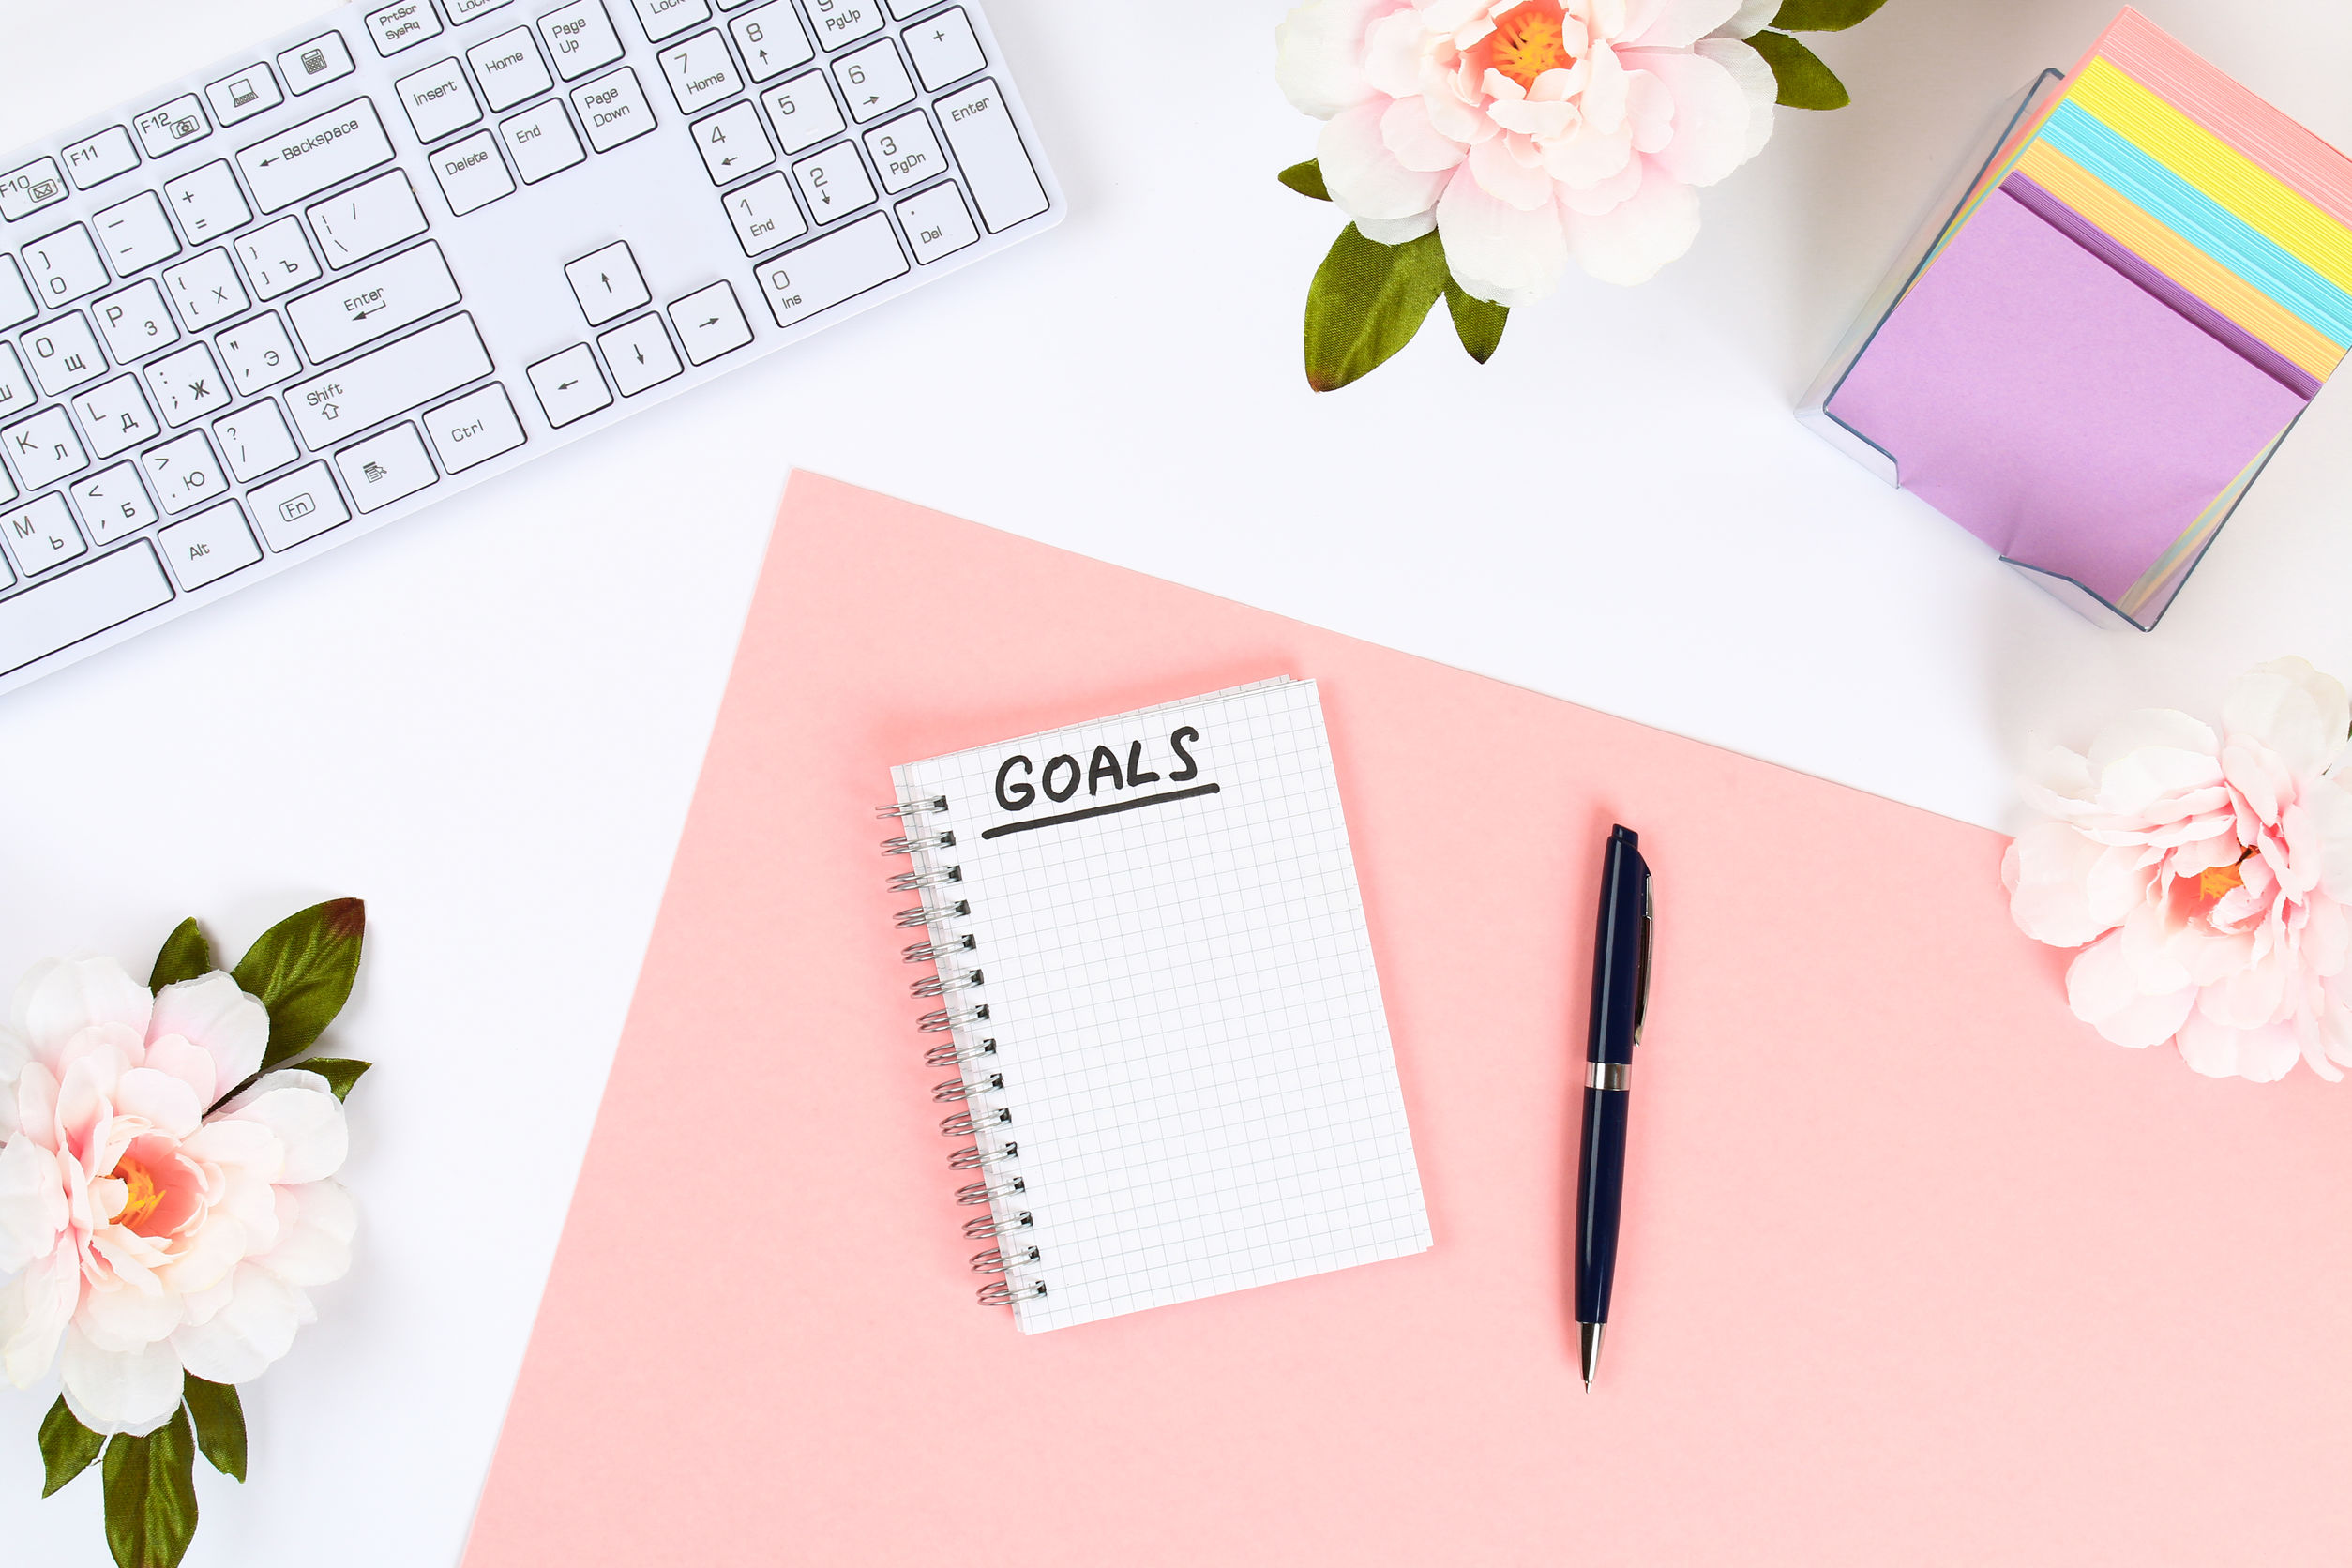 Write a goal for the new year 2010 in a white notebook on a white desktop next to a coffee mug and a keyboard. Top view, flat layout.